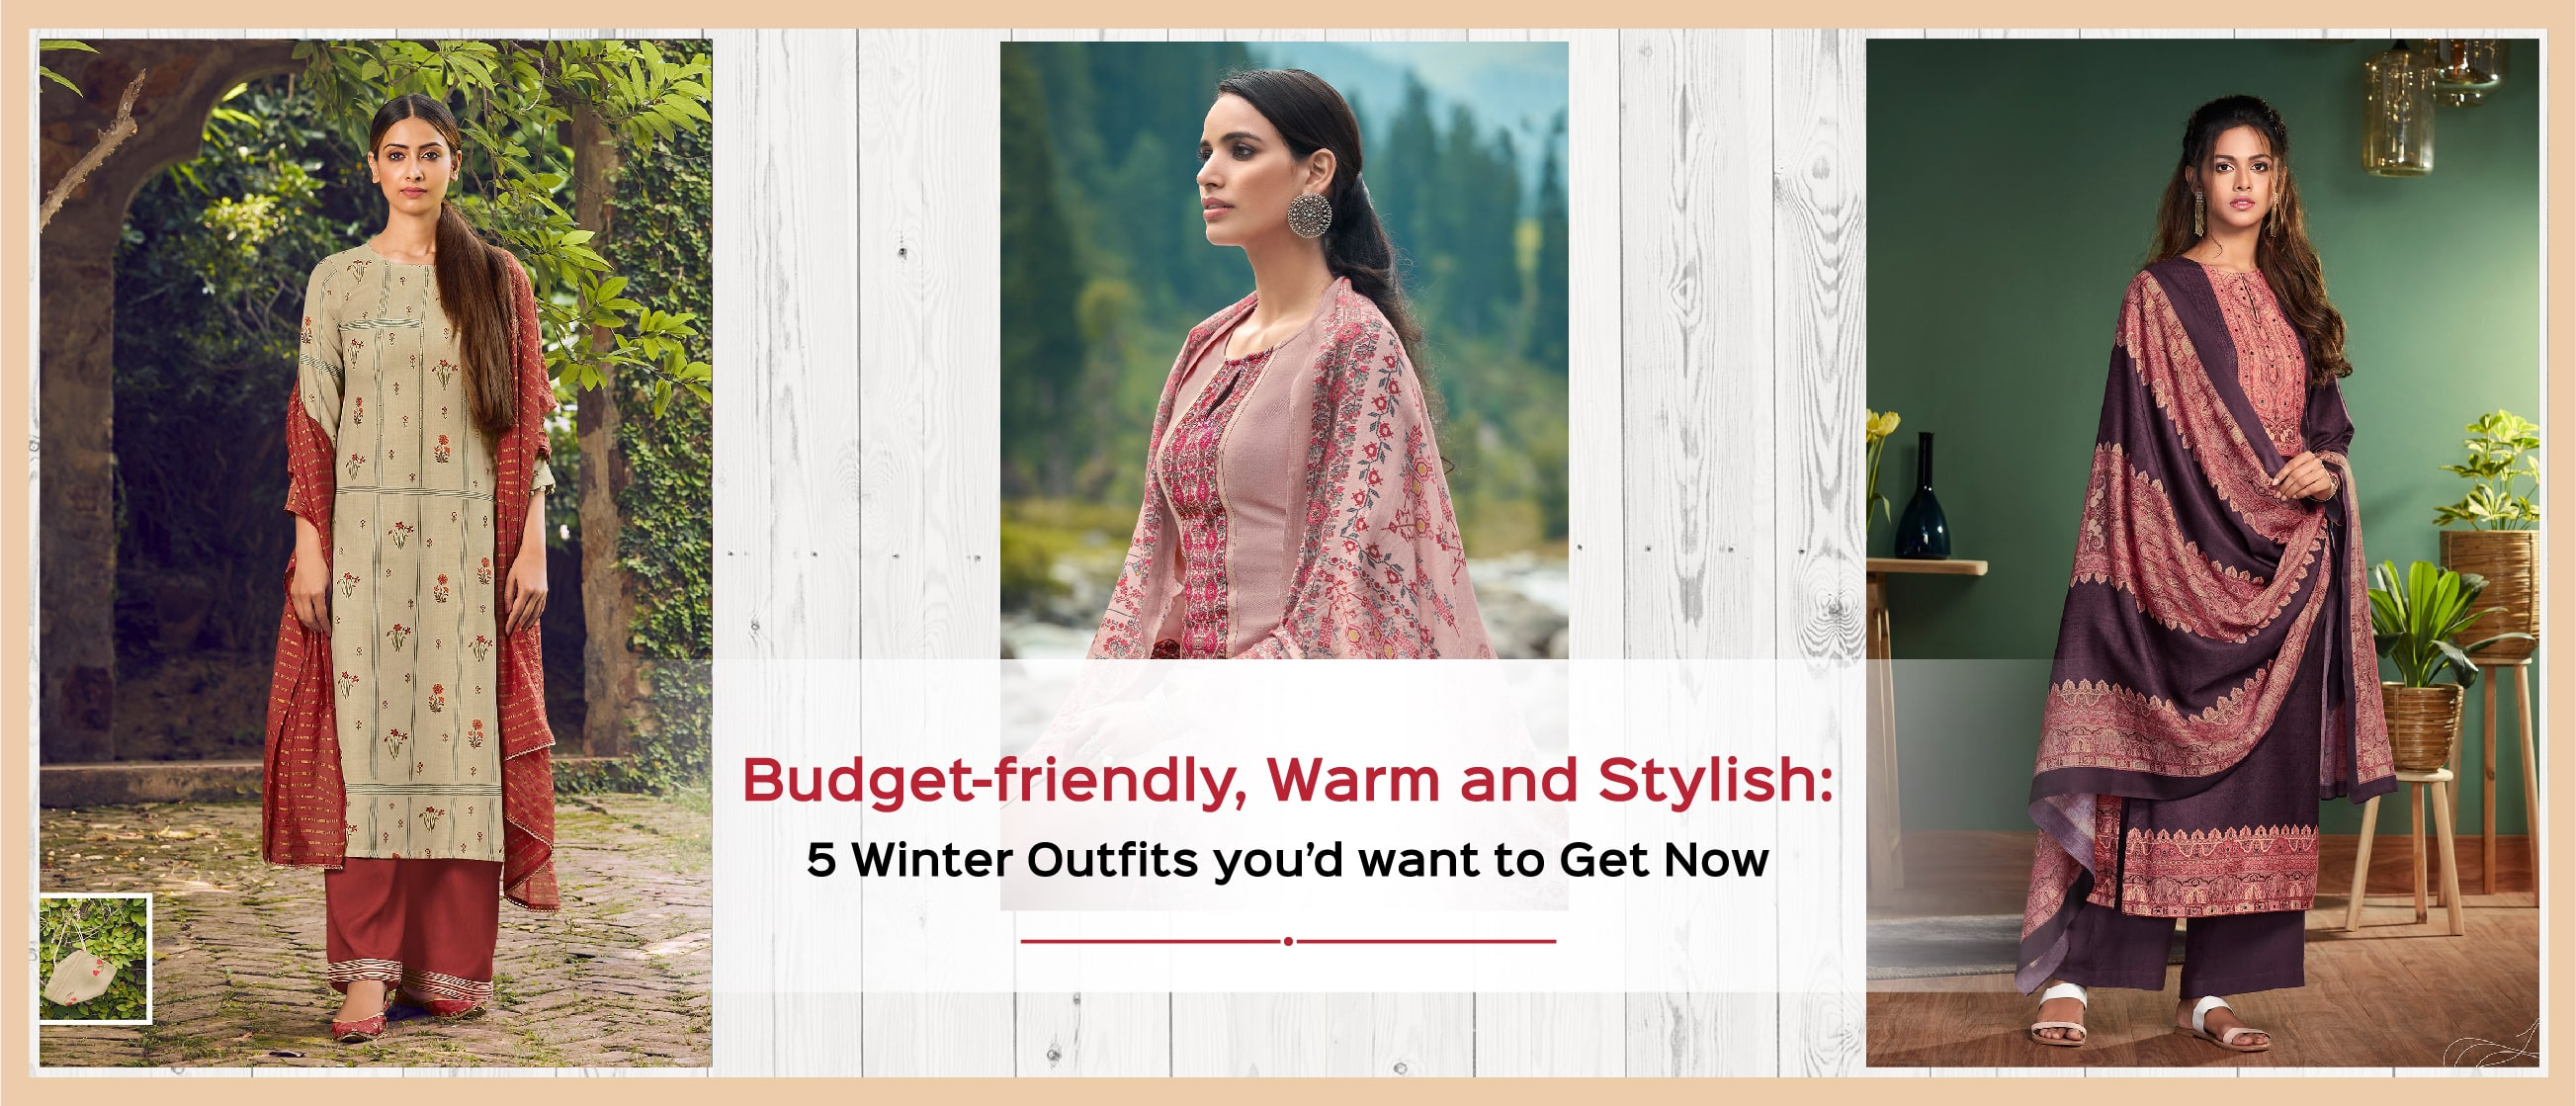 Budget-friendly, Warm and Stylish: 5 Winter Outfits you'd want to Get Now